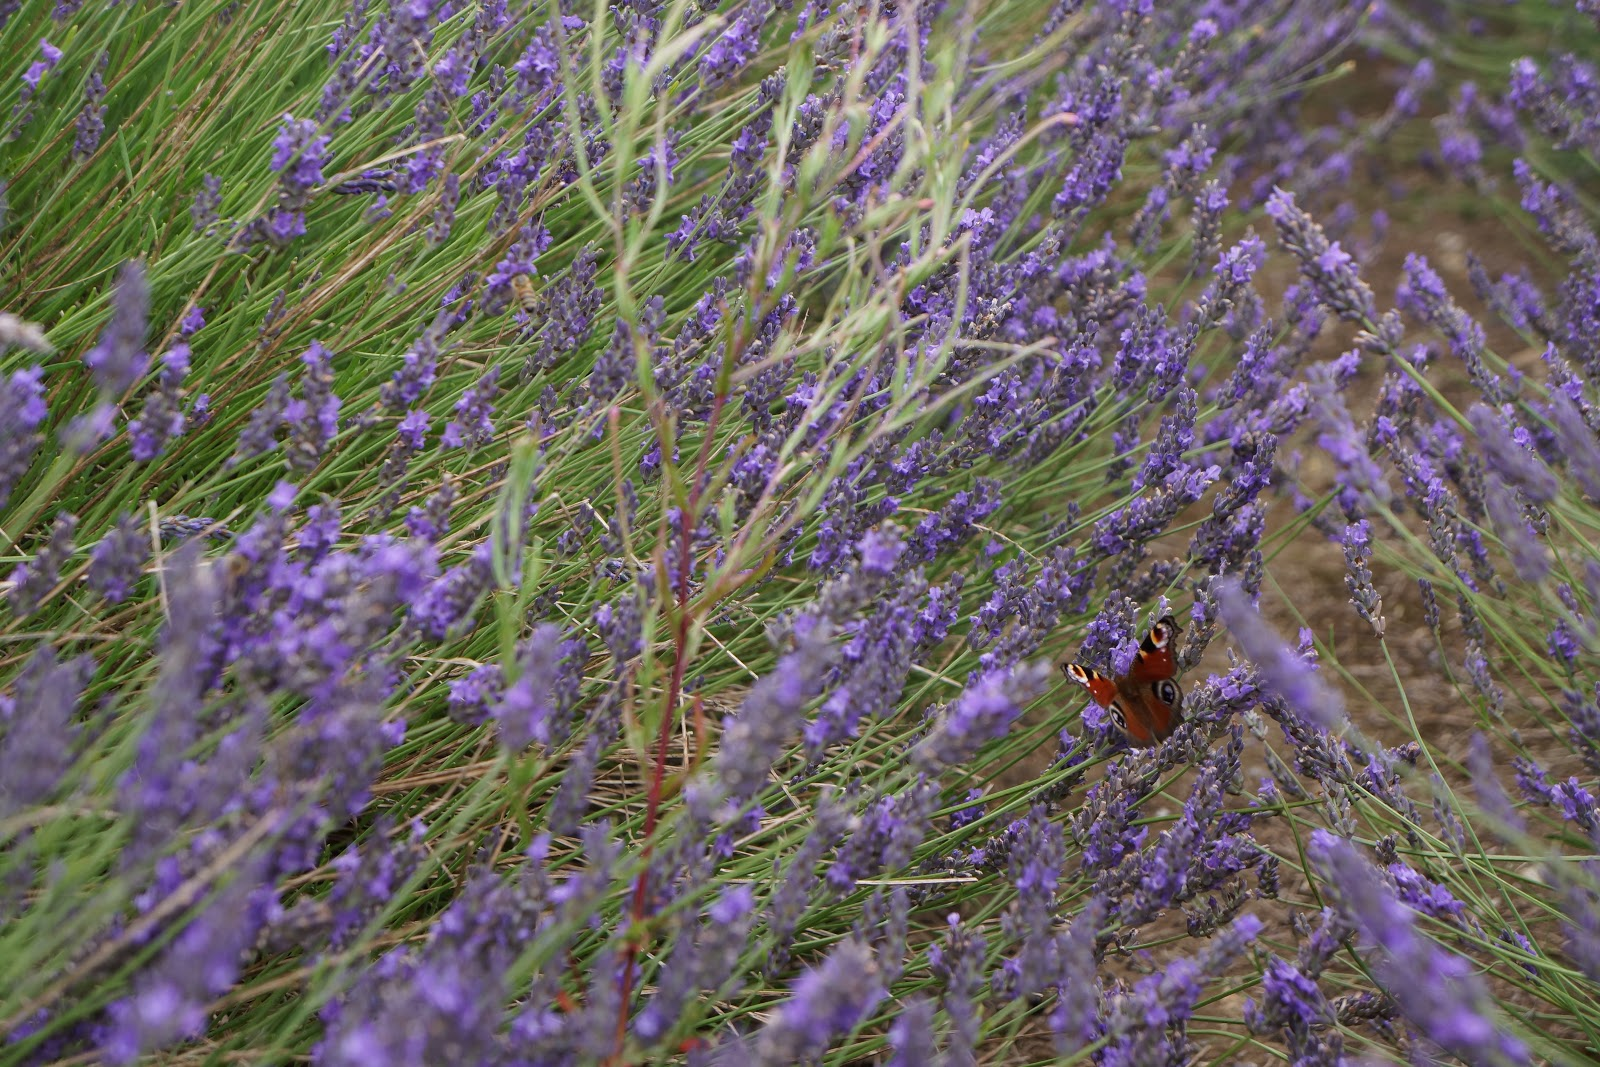 butterfly on a lavender flower bush